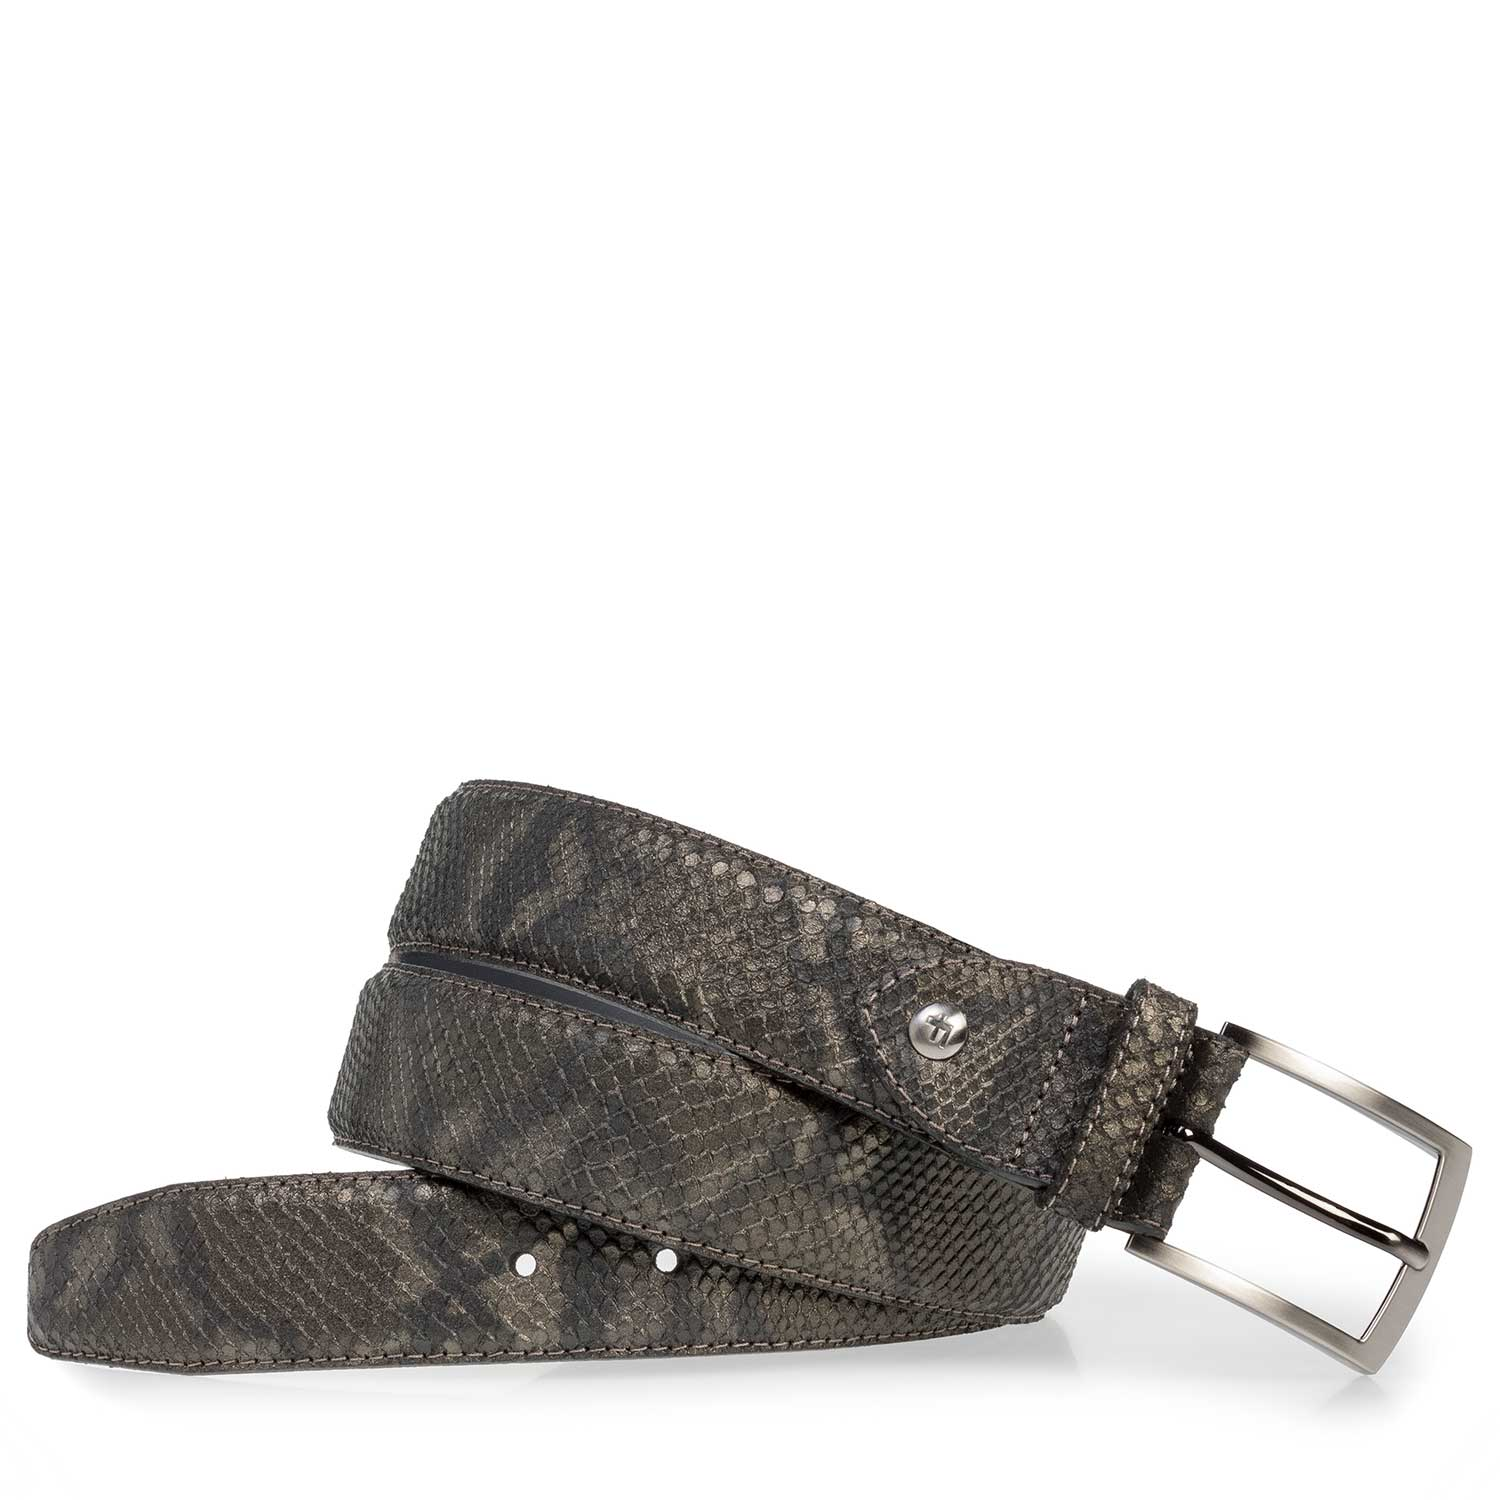 75201/01 - Leather belt with olive green snake print